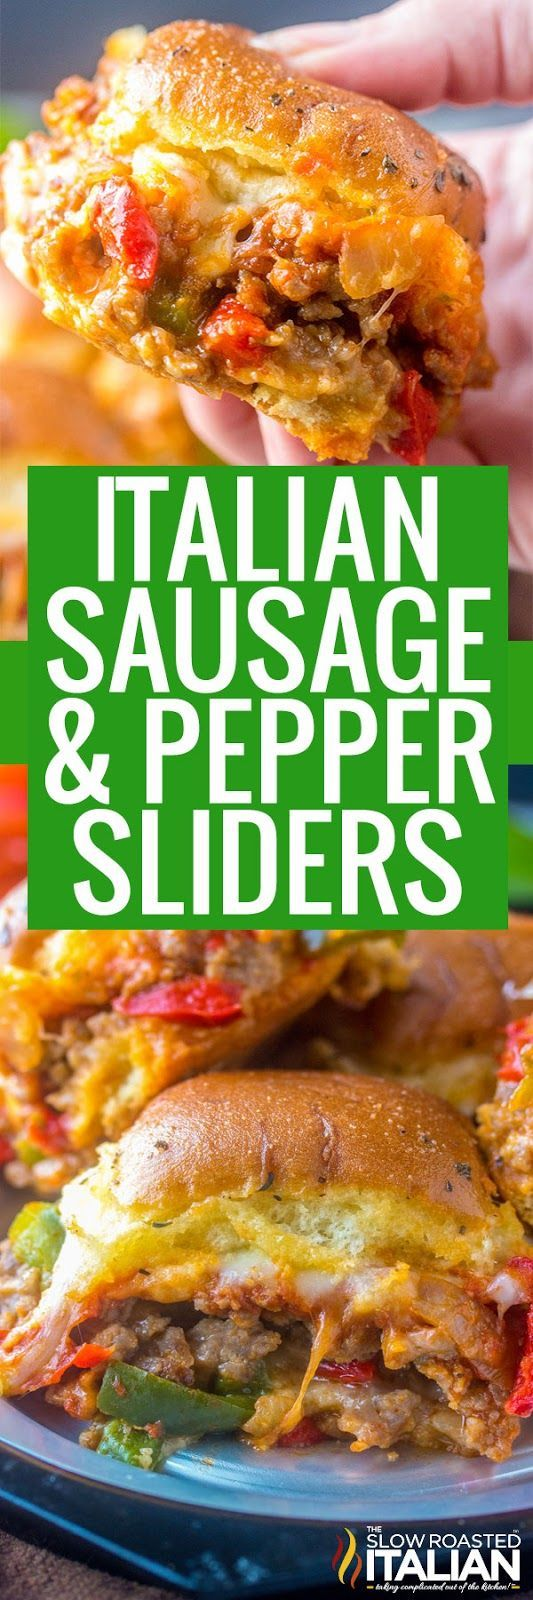 Italian Sausage and Pepper Sliders are meaty, cheesy and gooey. They are the ultimate comfort food for game day, get-togethers or just a good hearty meal!